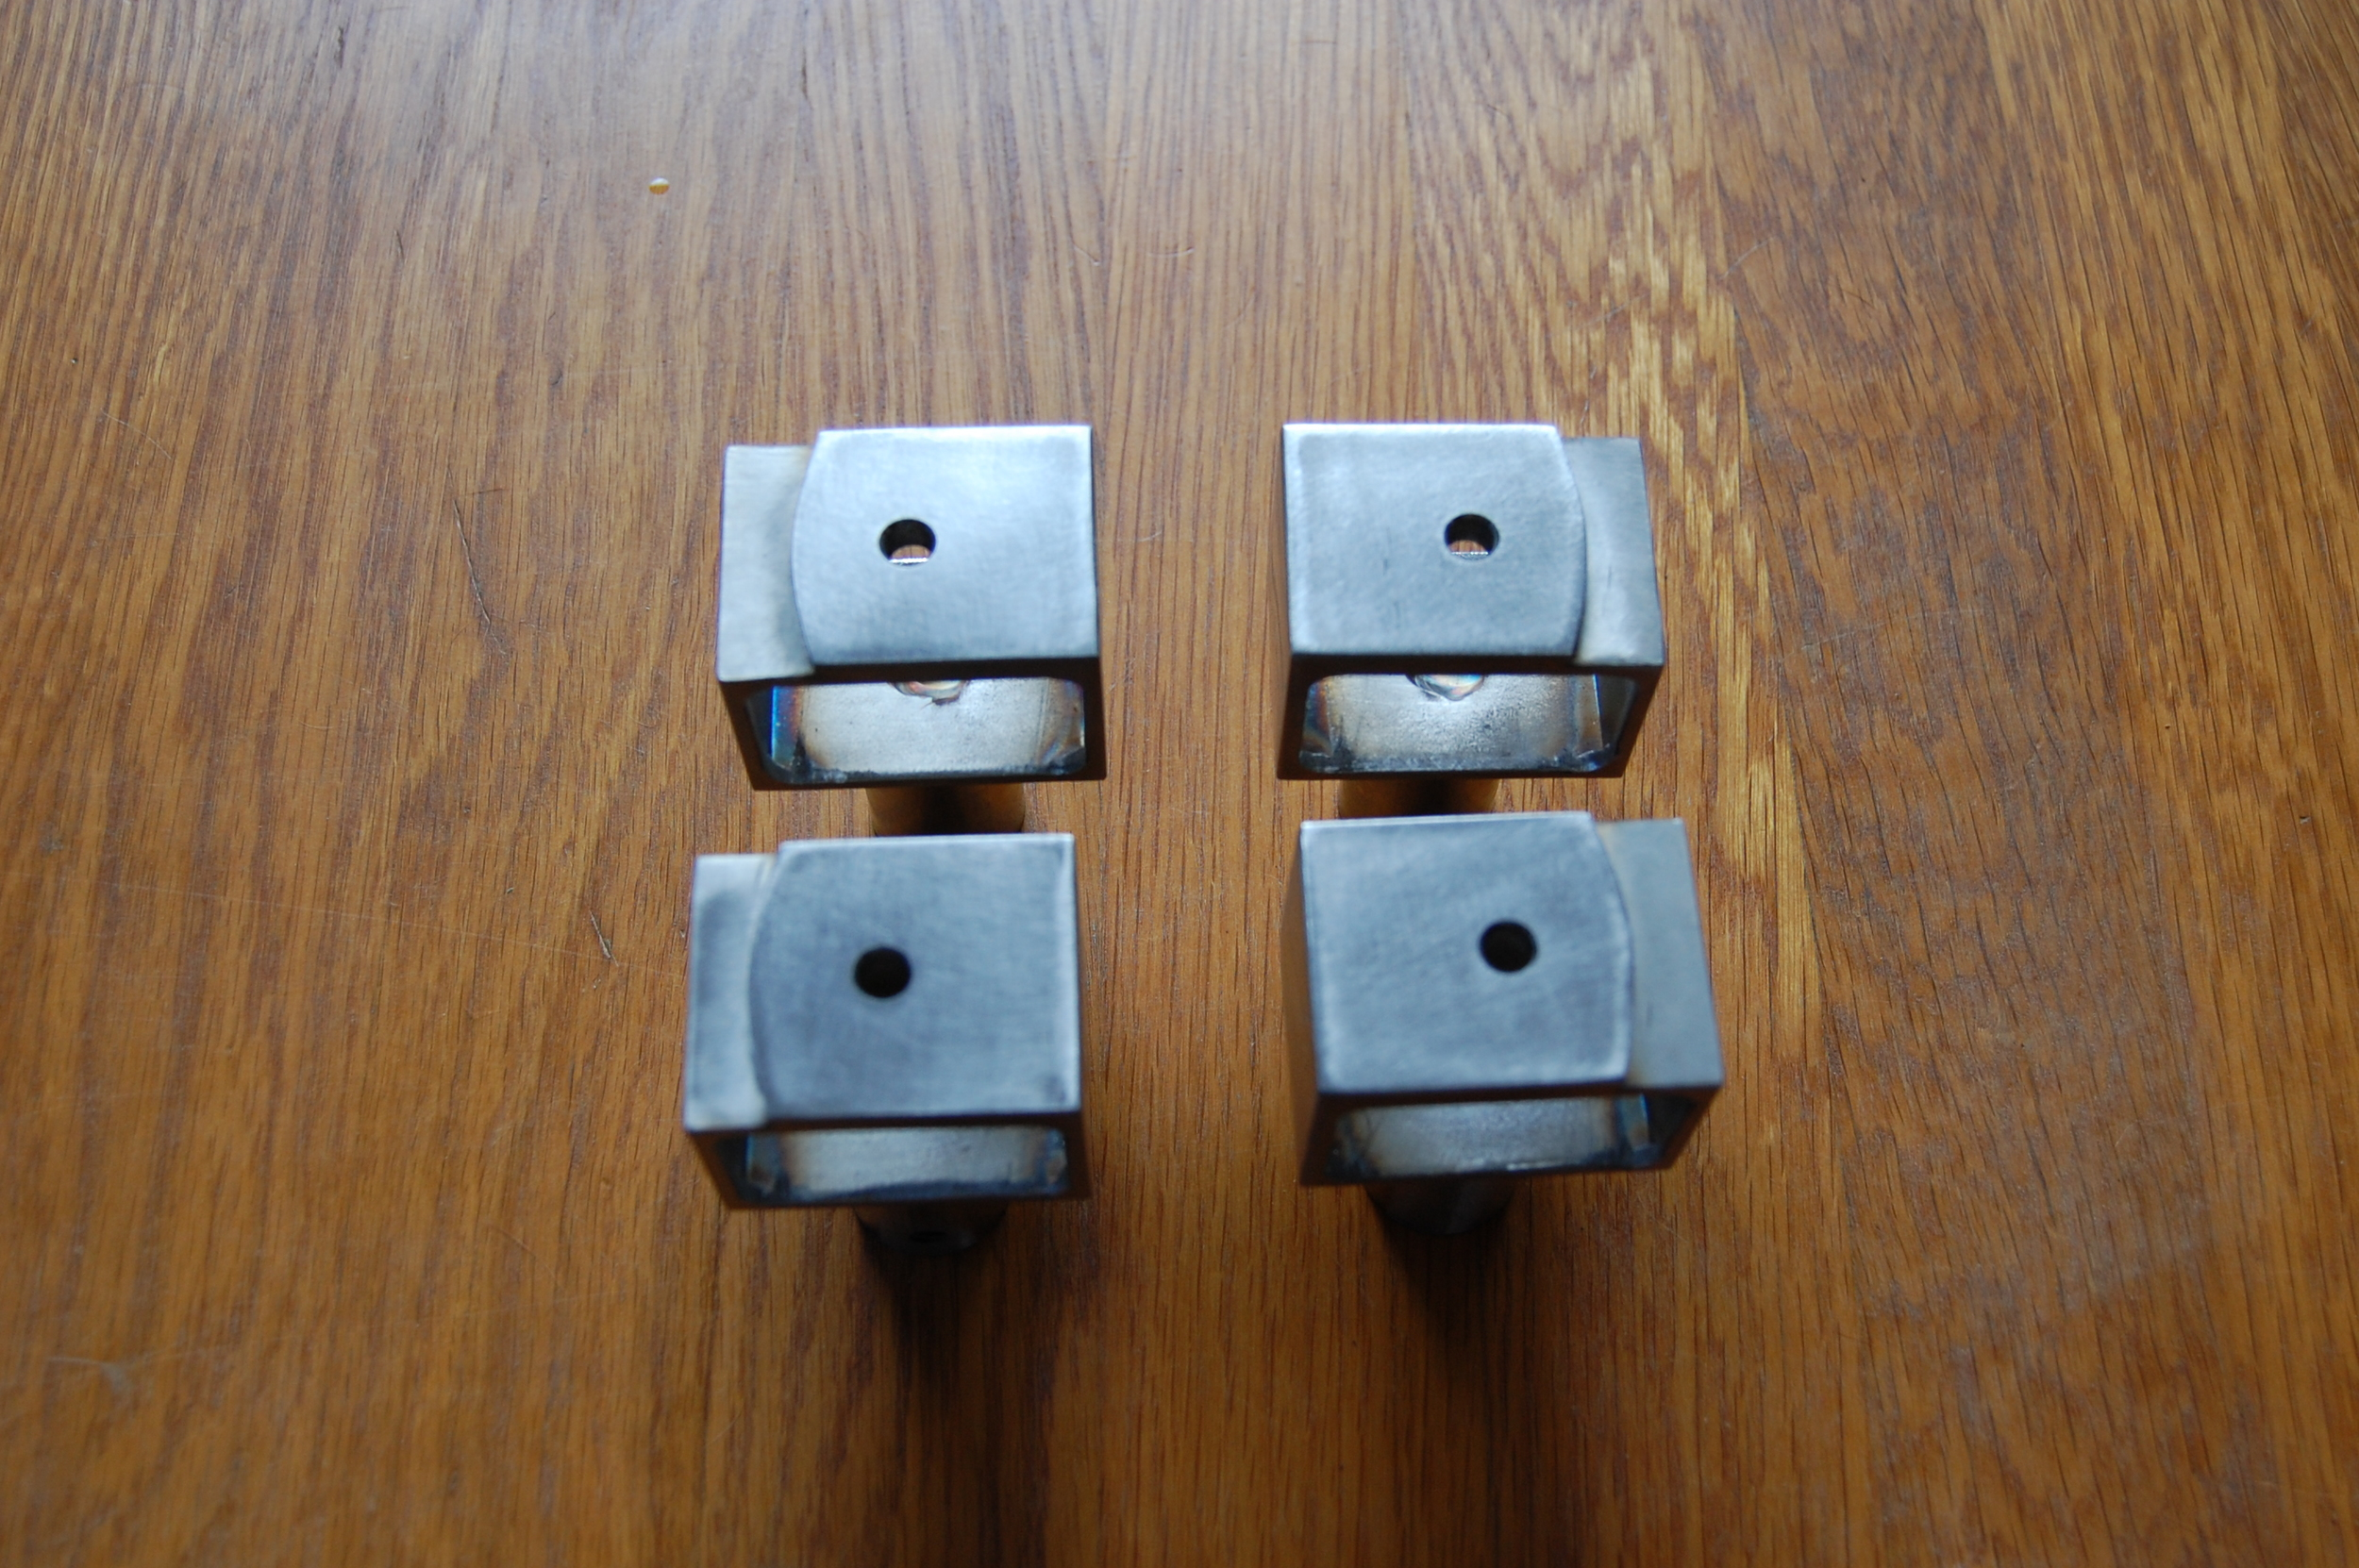 Stainless steel door handle standoffs.  Designed by Group Jake Collaborative